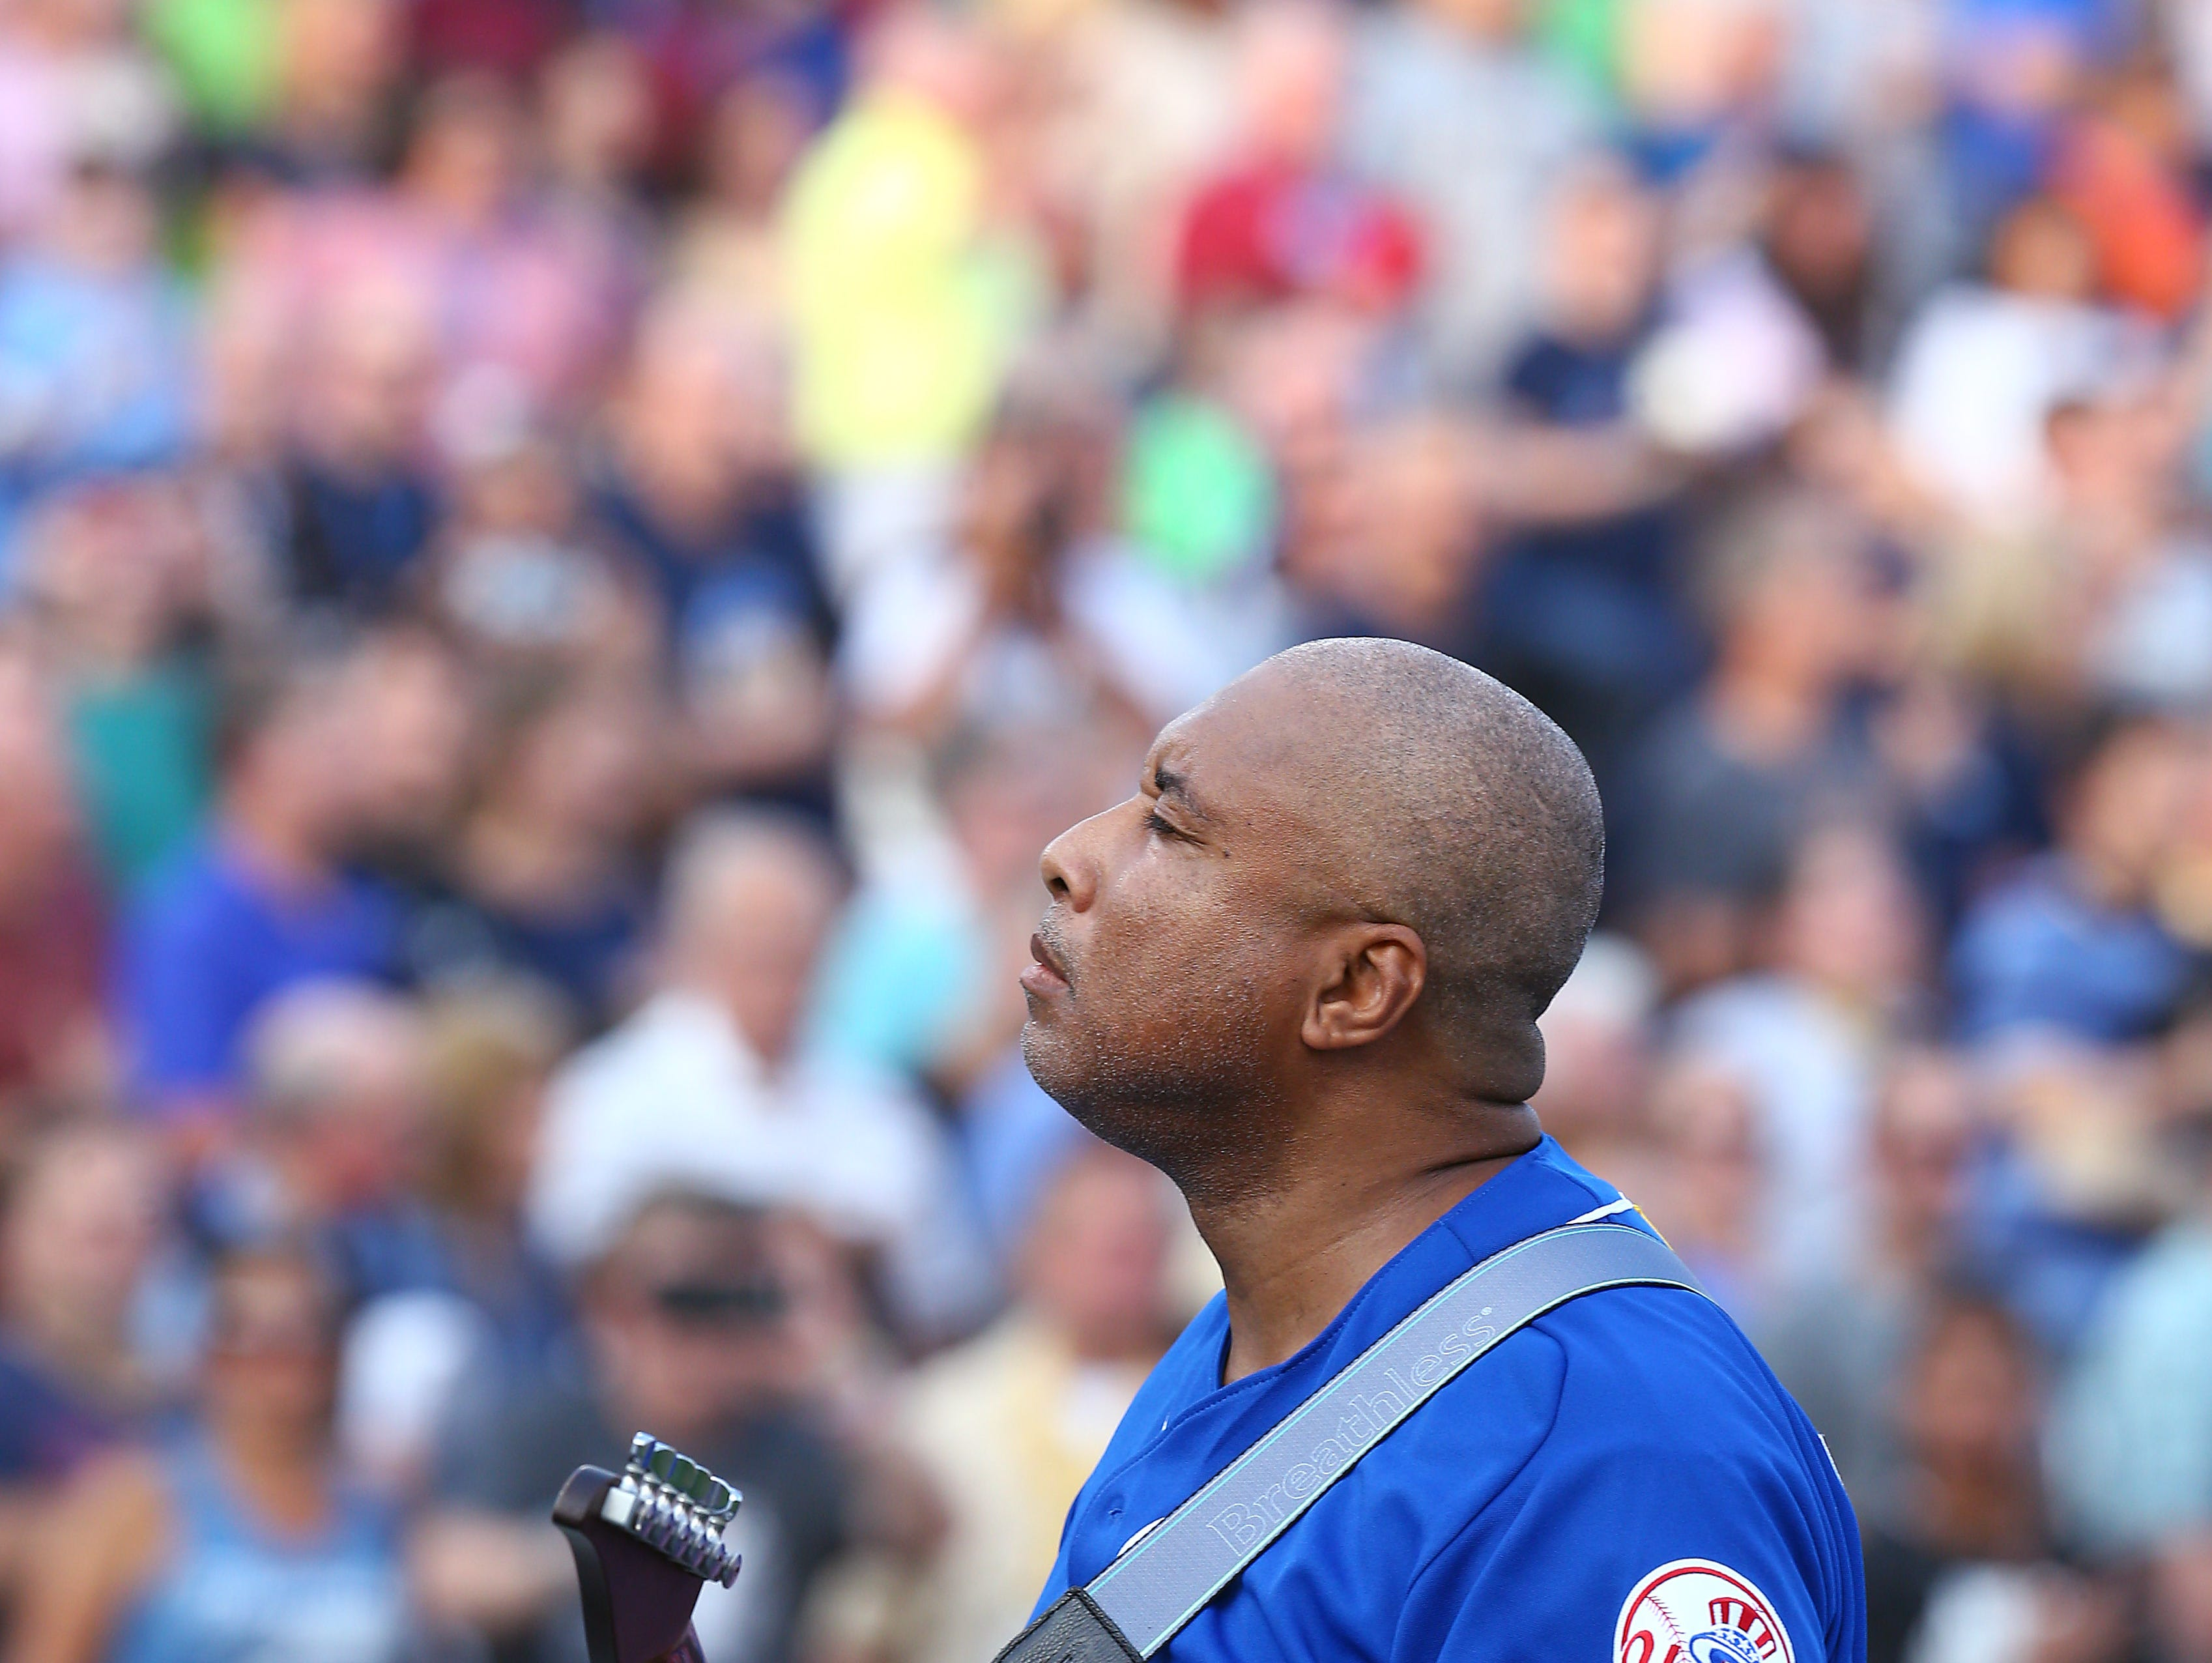 Former Yankee Bernie Williams performs the National Anthem before the Trenton Thunder hosts the 2018 Eastern League All-Star Classic at ARM & HAMMER Park in Trenton. July 11, 2018, Trenton, NJ.